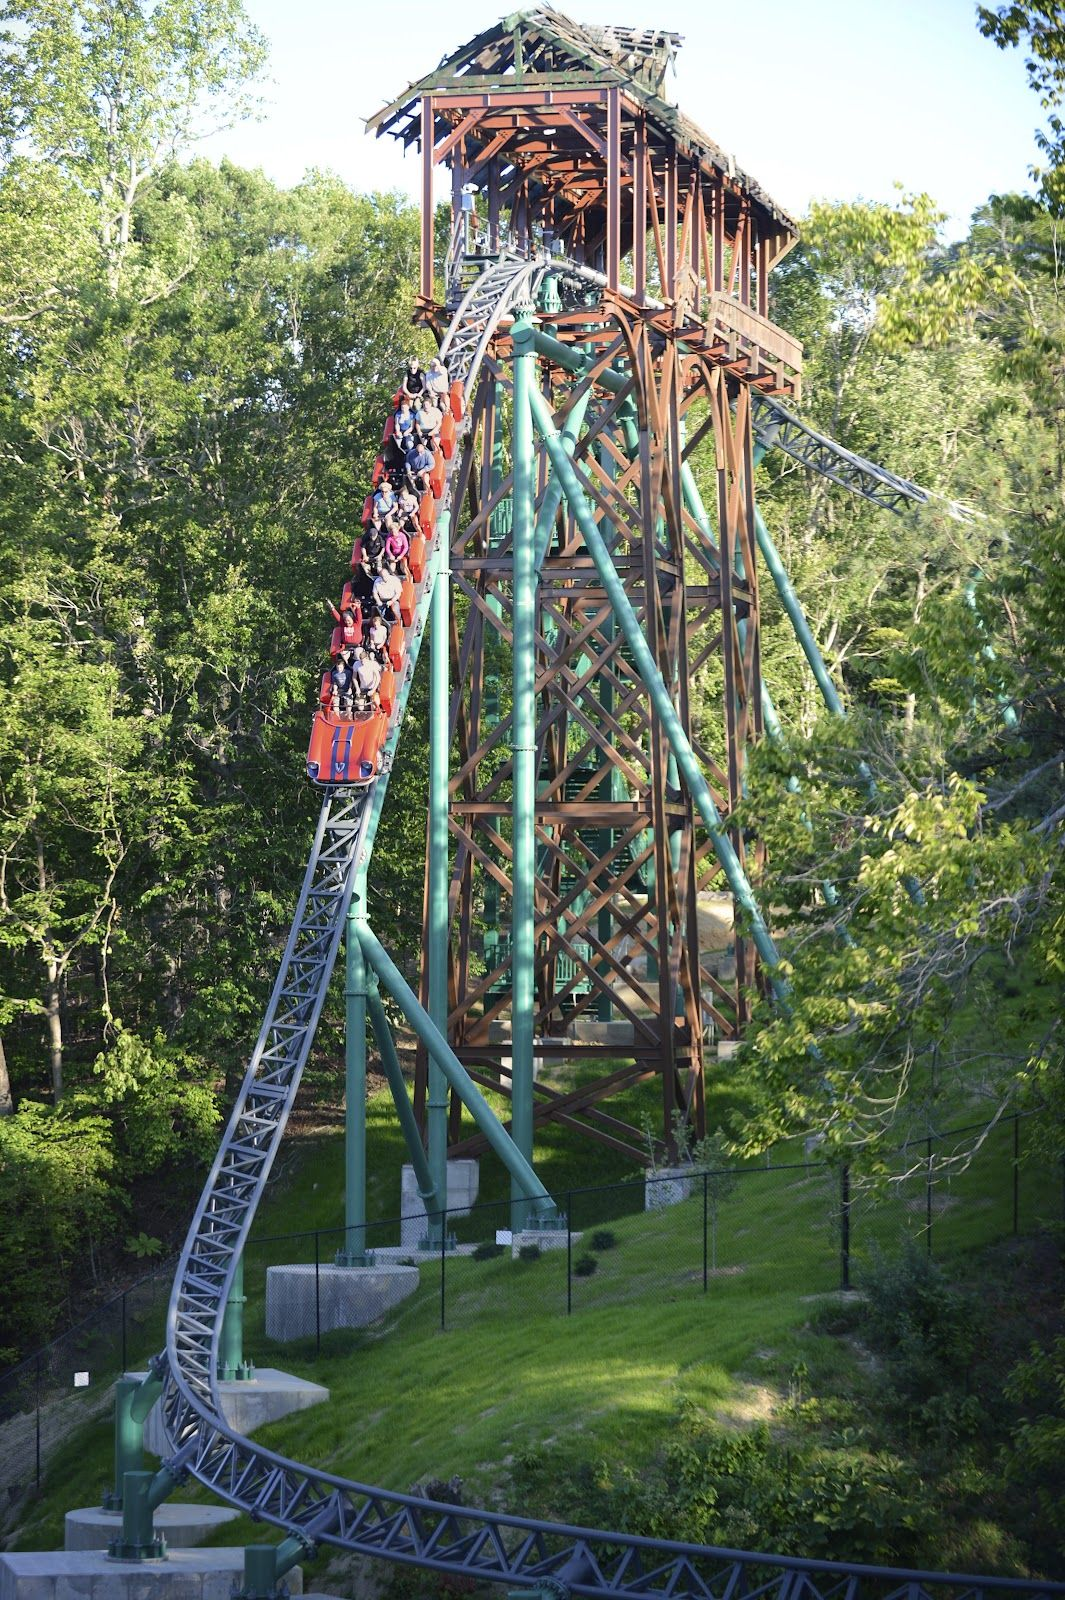 Big Drop On The All New Verbolten At Busch Gardens Williamsburg George And I Rode This In 2012